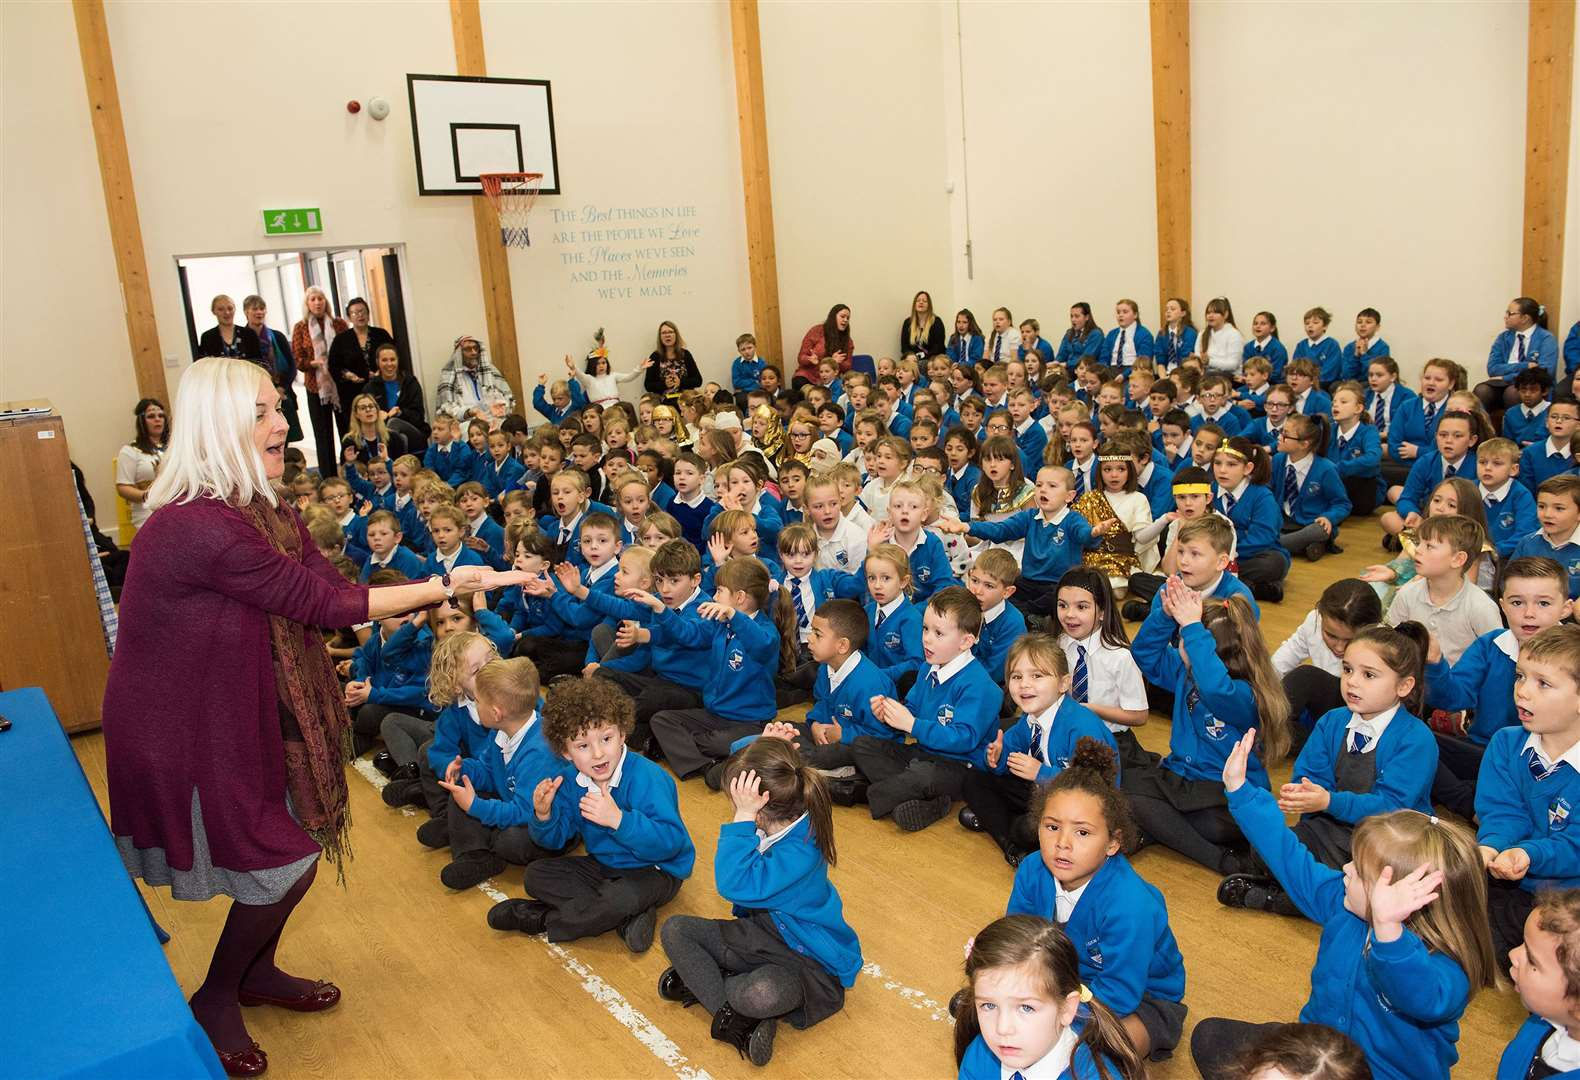 Vocal assemblies are helping to inspire and unite school